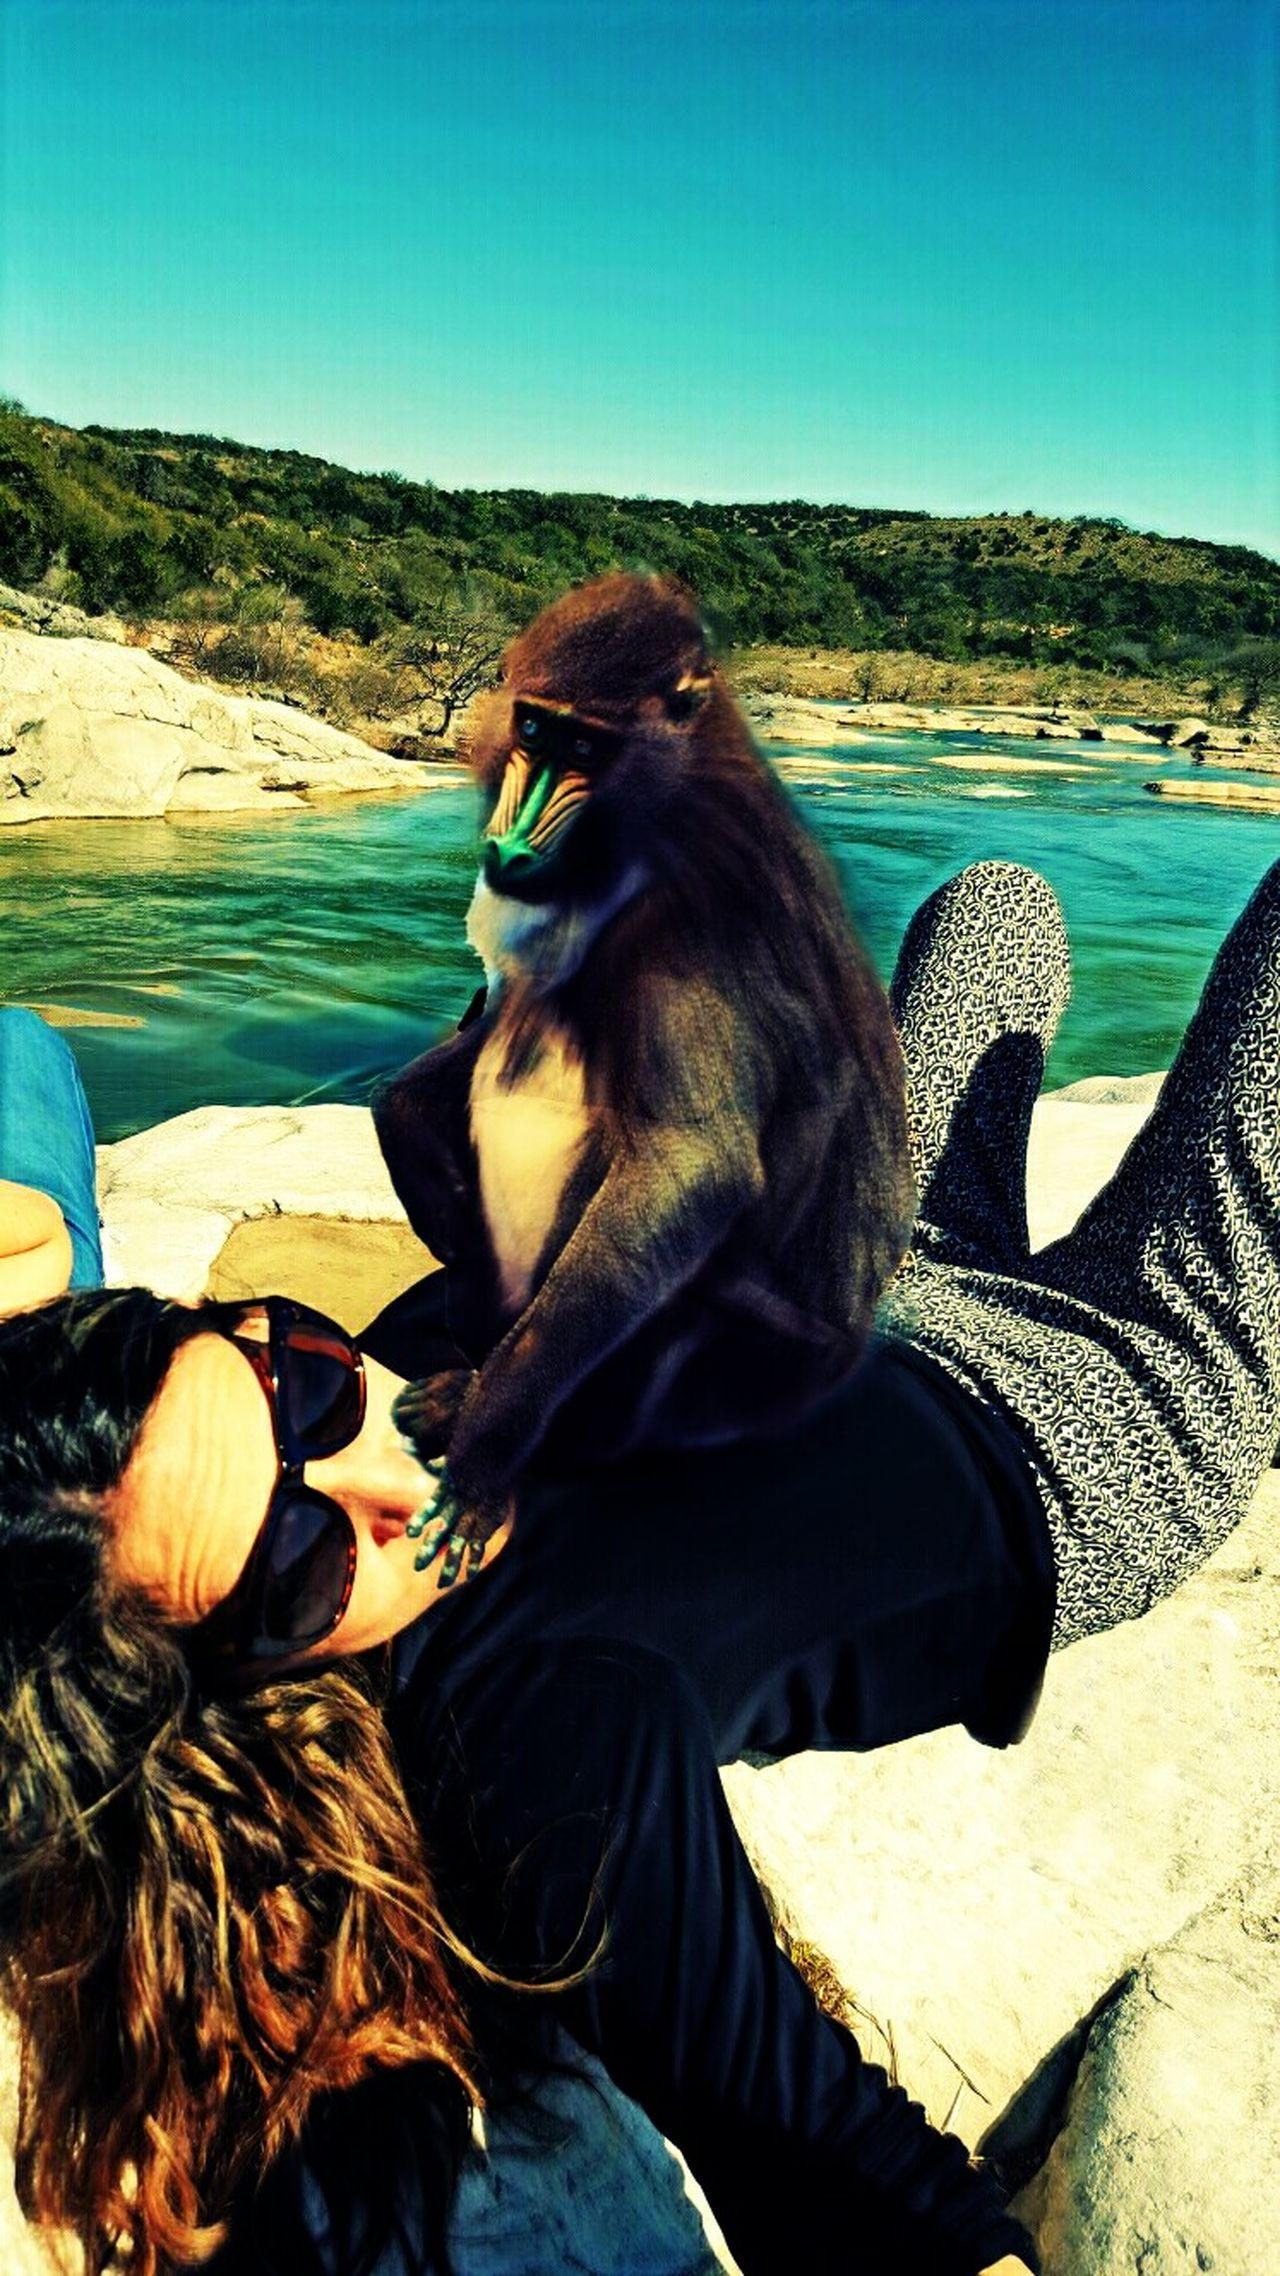 Animal Themes Monkey One Animal Mammal Ape Noir Layers And Textures Bizaare Dreamlike Surrealistic Surrealism Photography Unusal Scenes Surreal Rocks And Water Odd Portrait Contorted